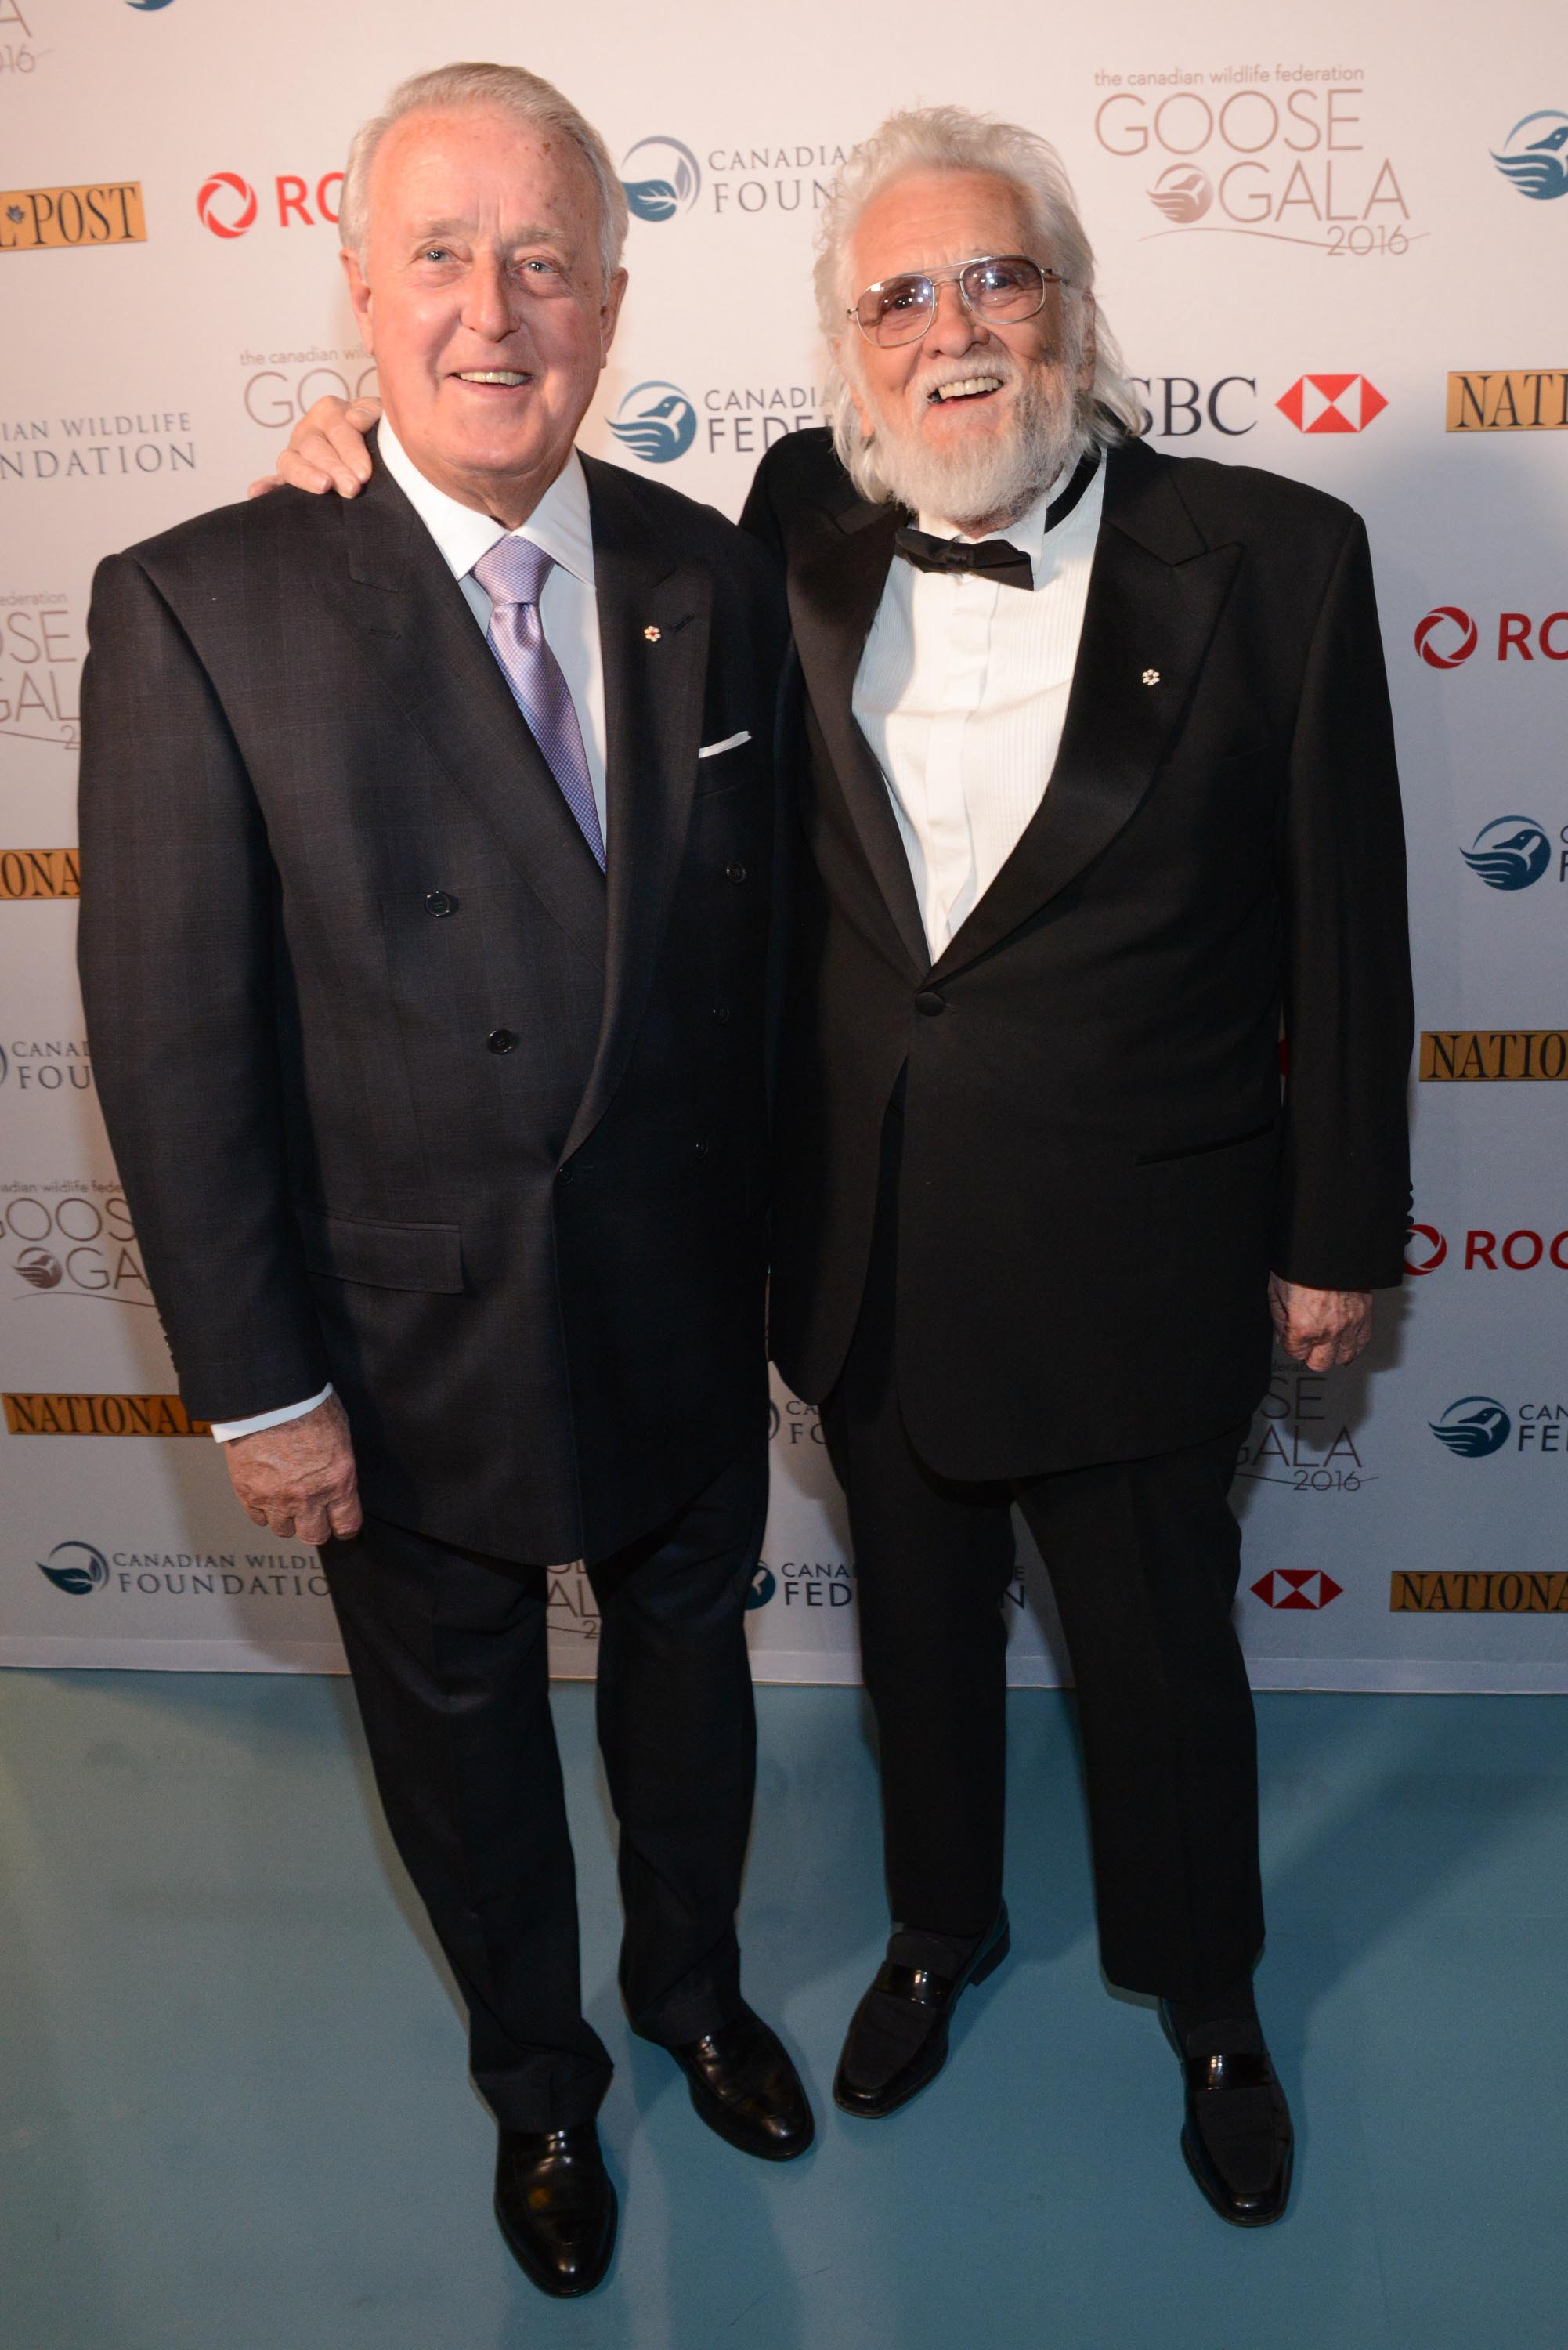 The Right Honourable Brian Mulroney and Ronnie Hawkins